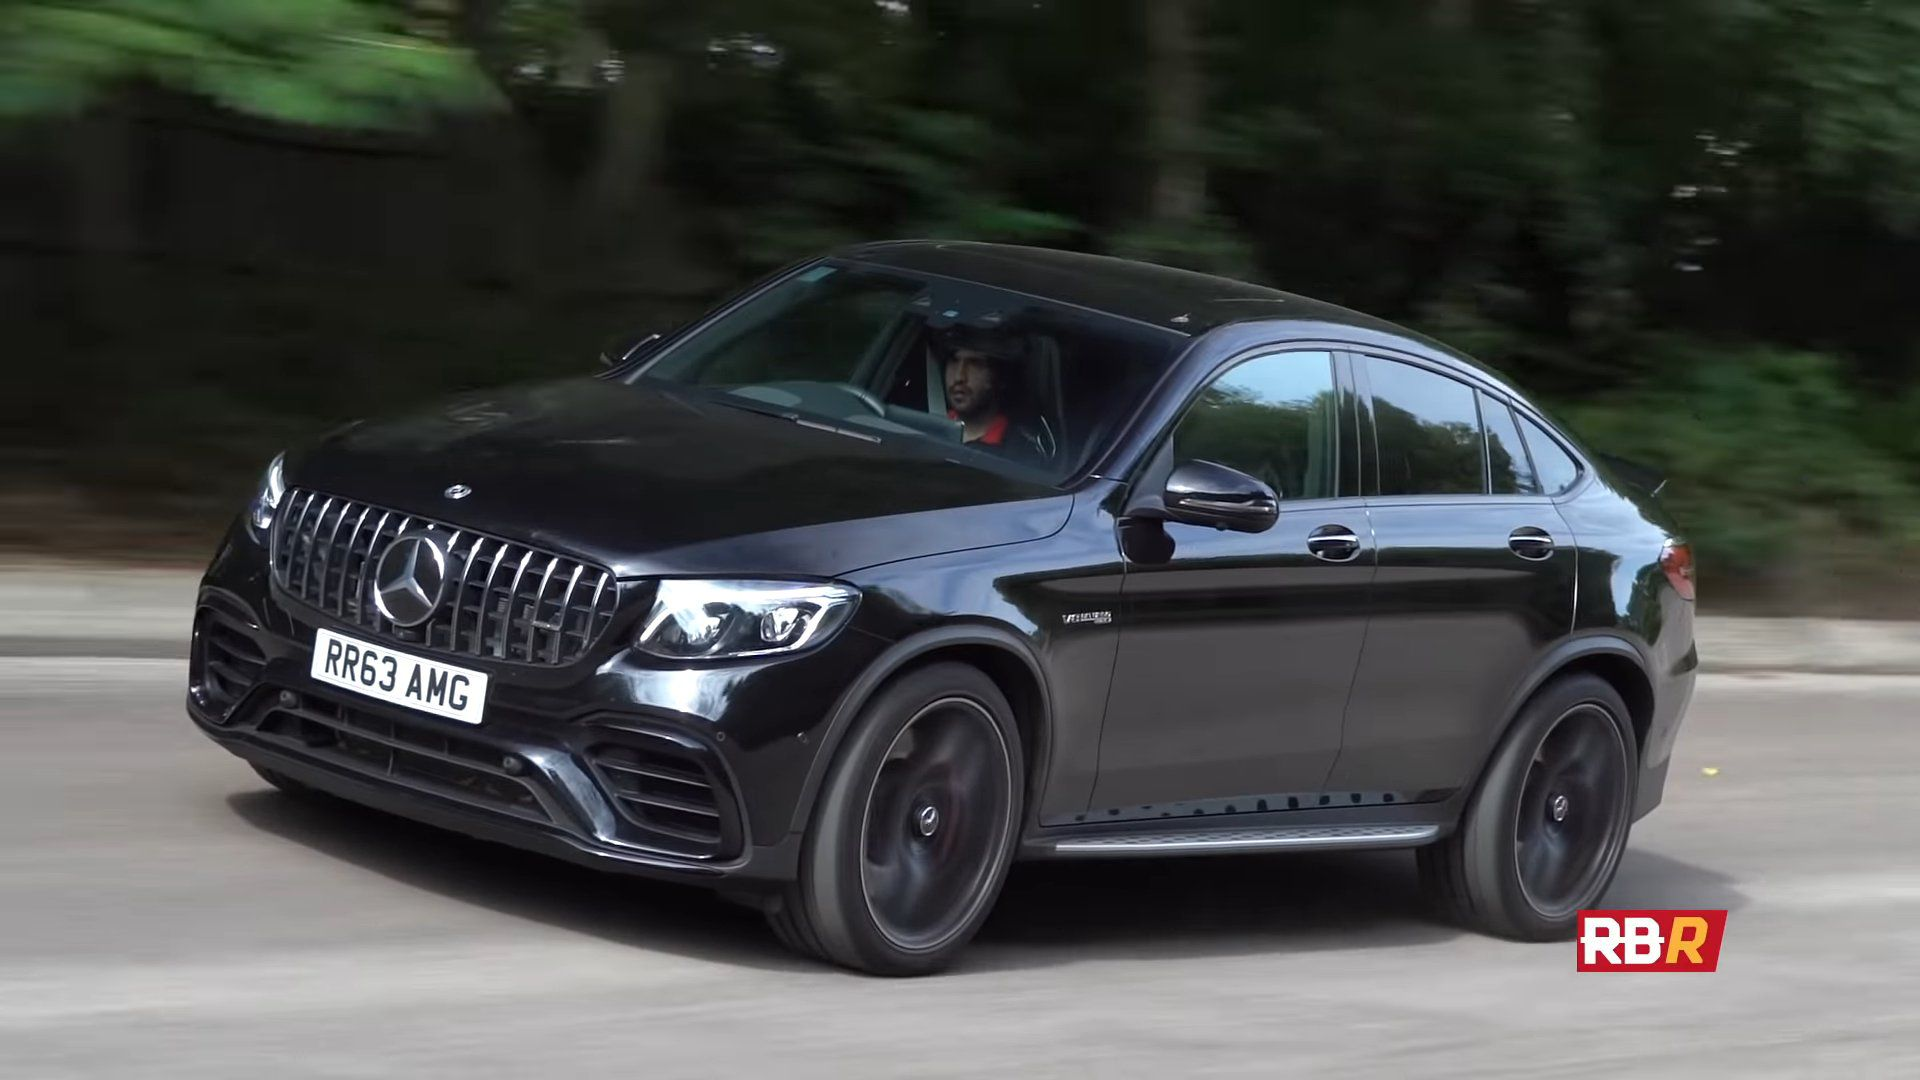 Mercedes-AMG GLC 63 S Coupe 2018 model